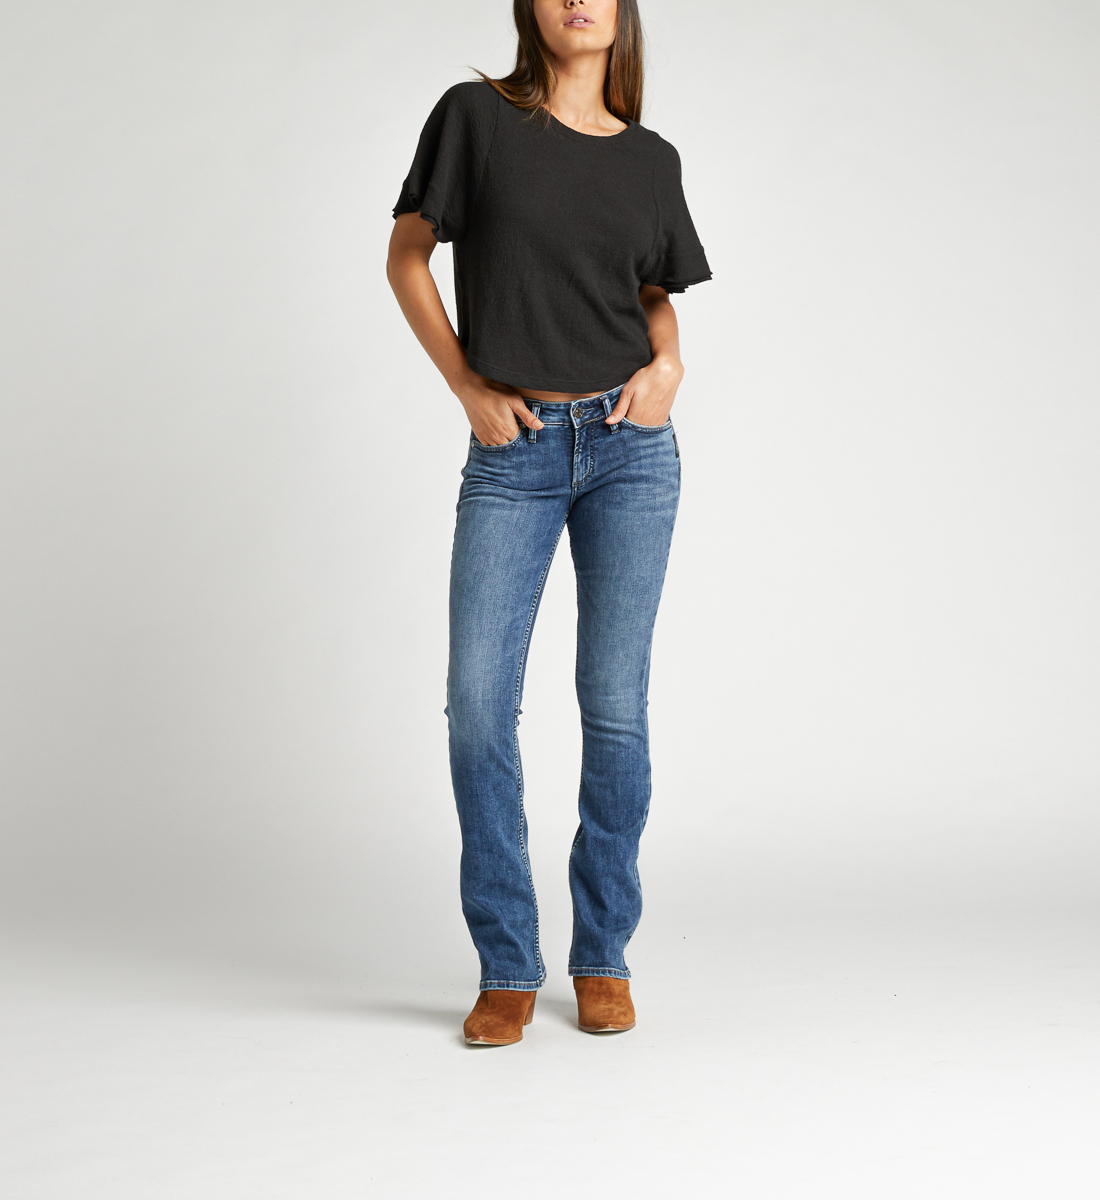 Silver Jeans Suki Mid Rise Bootcut Jeans